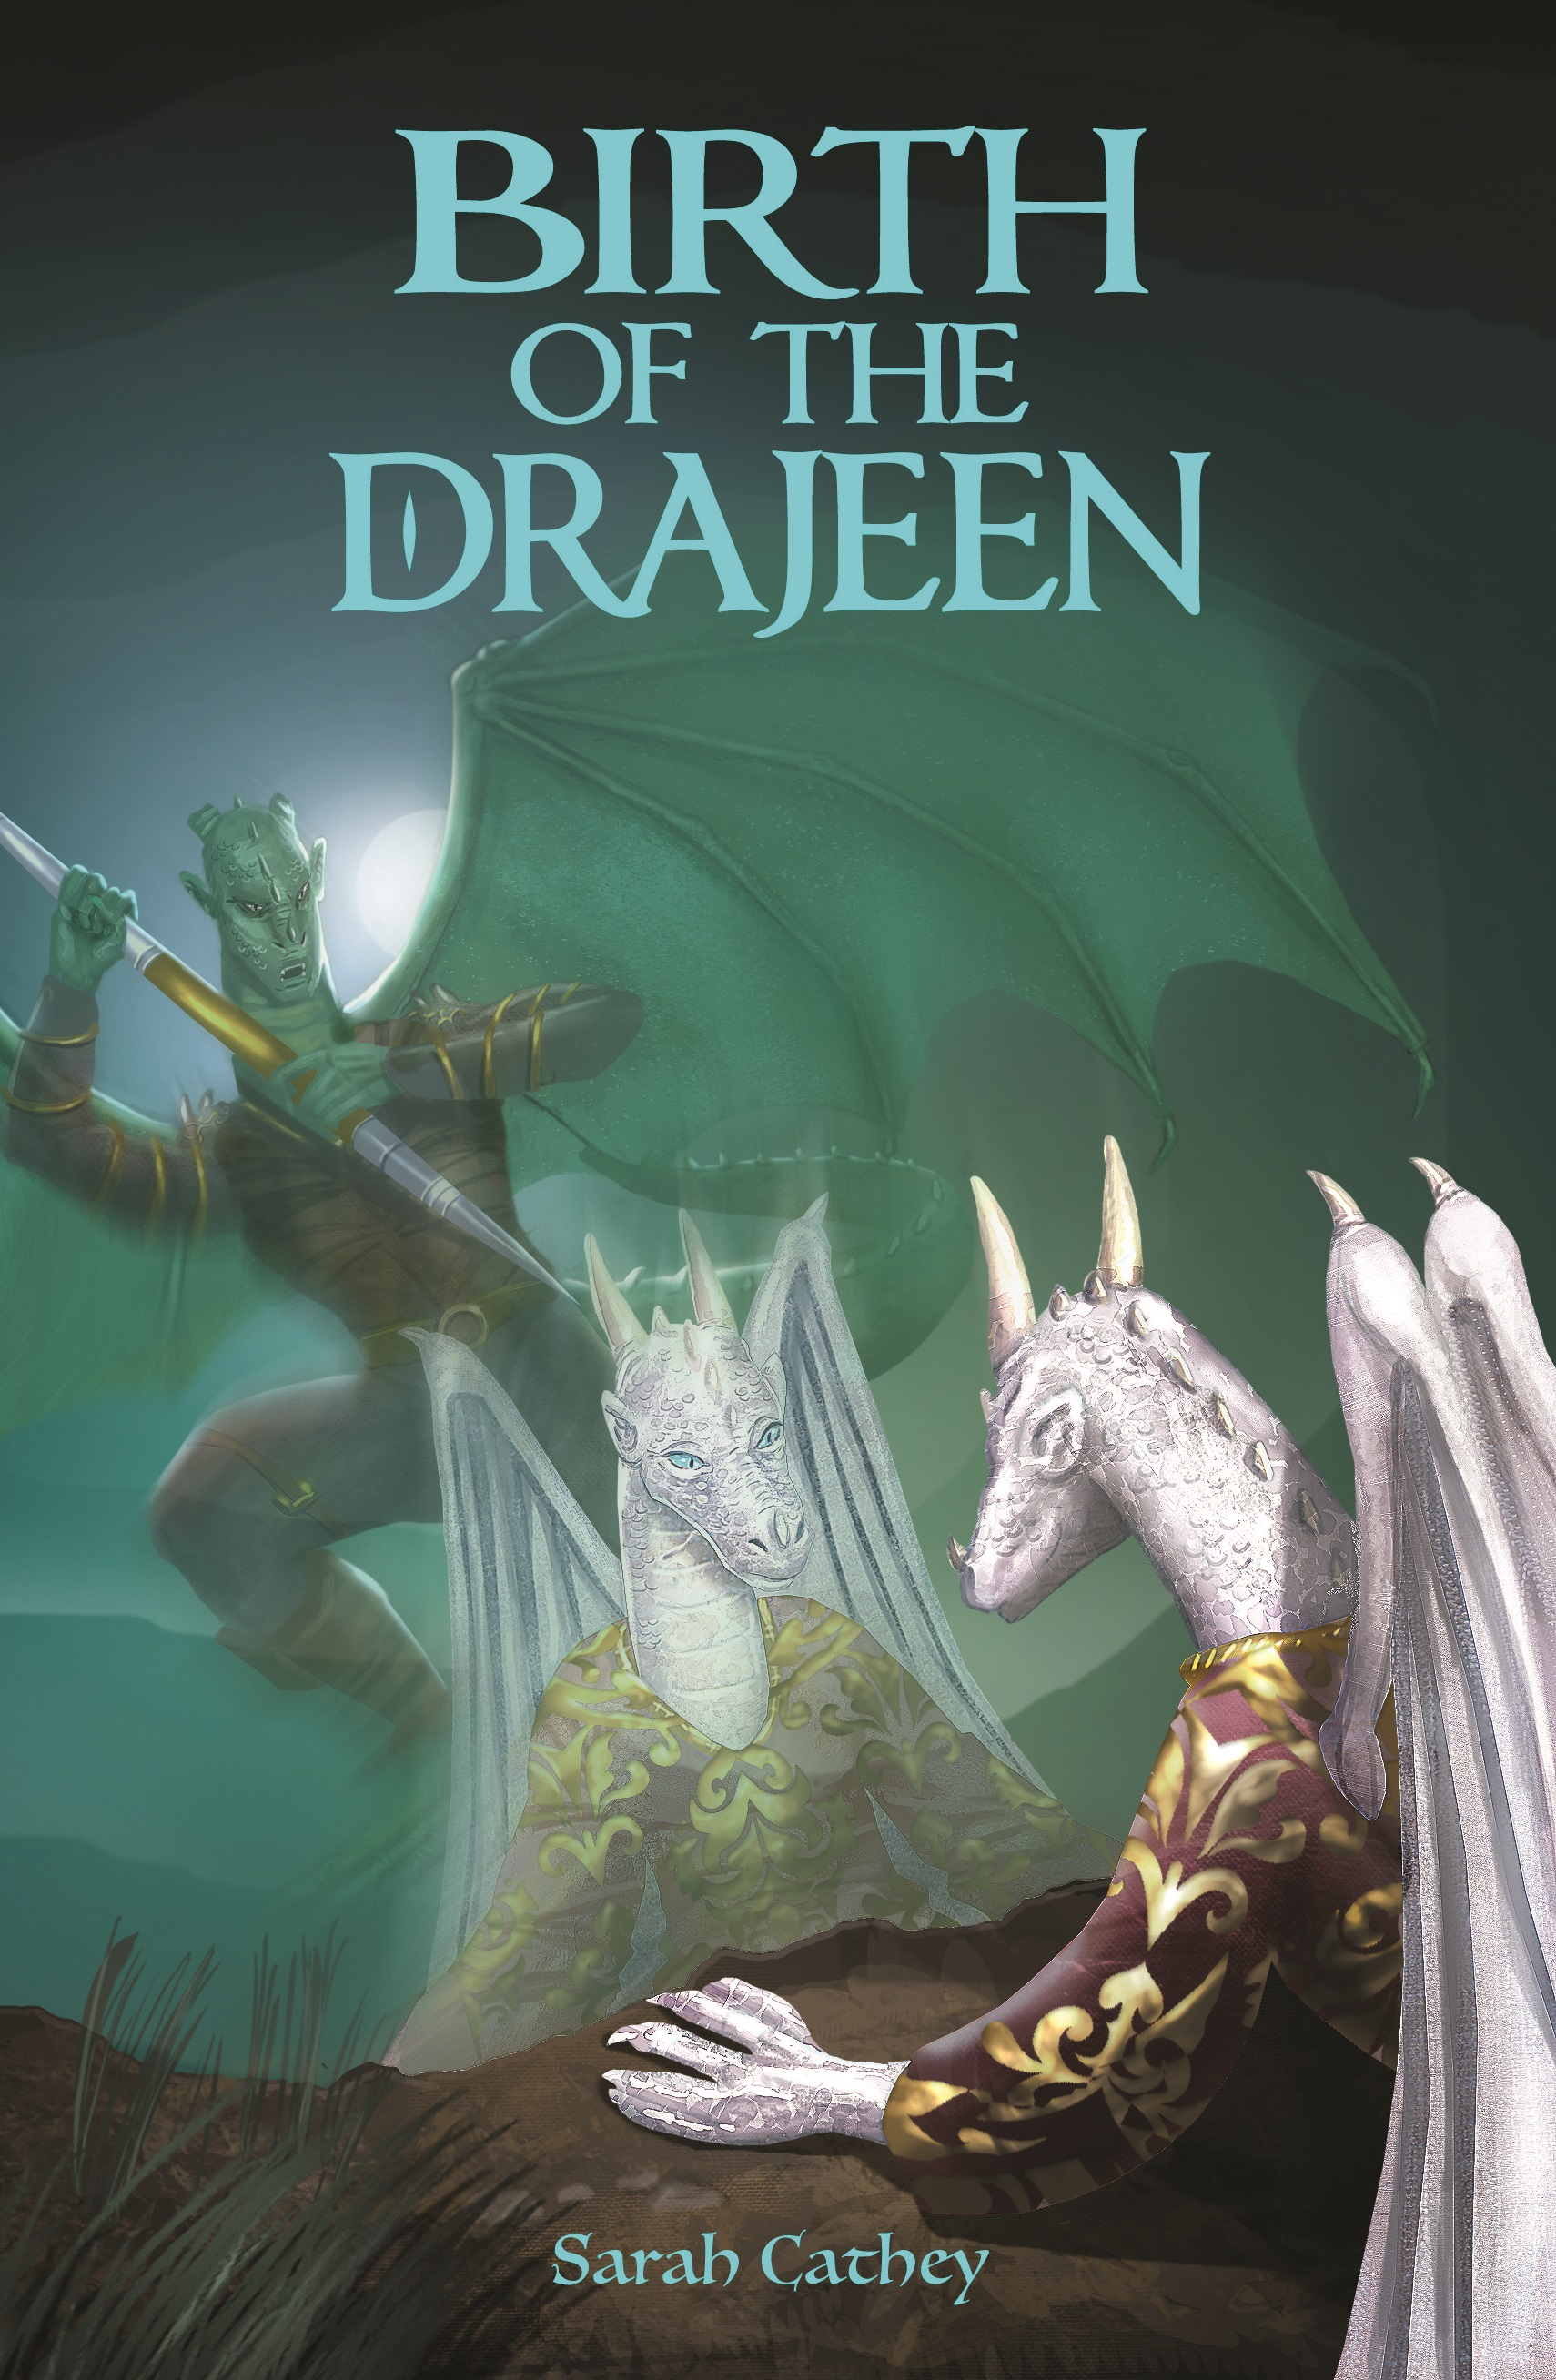 birth-of-the-drajeen-cover-kindle